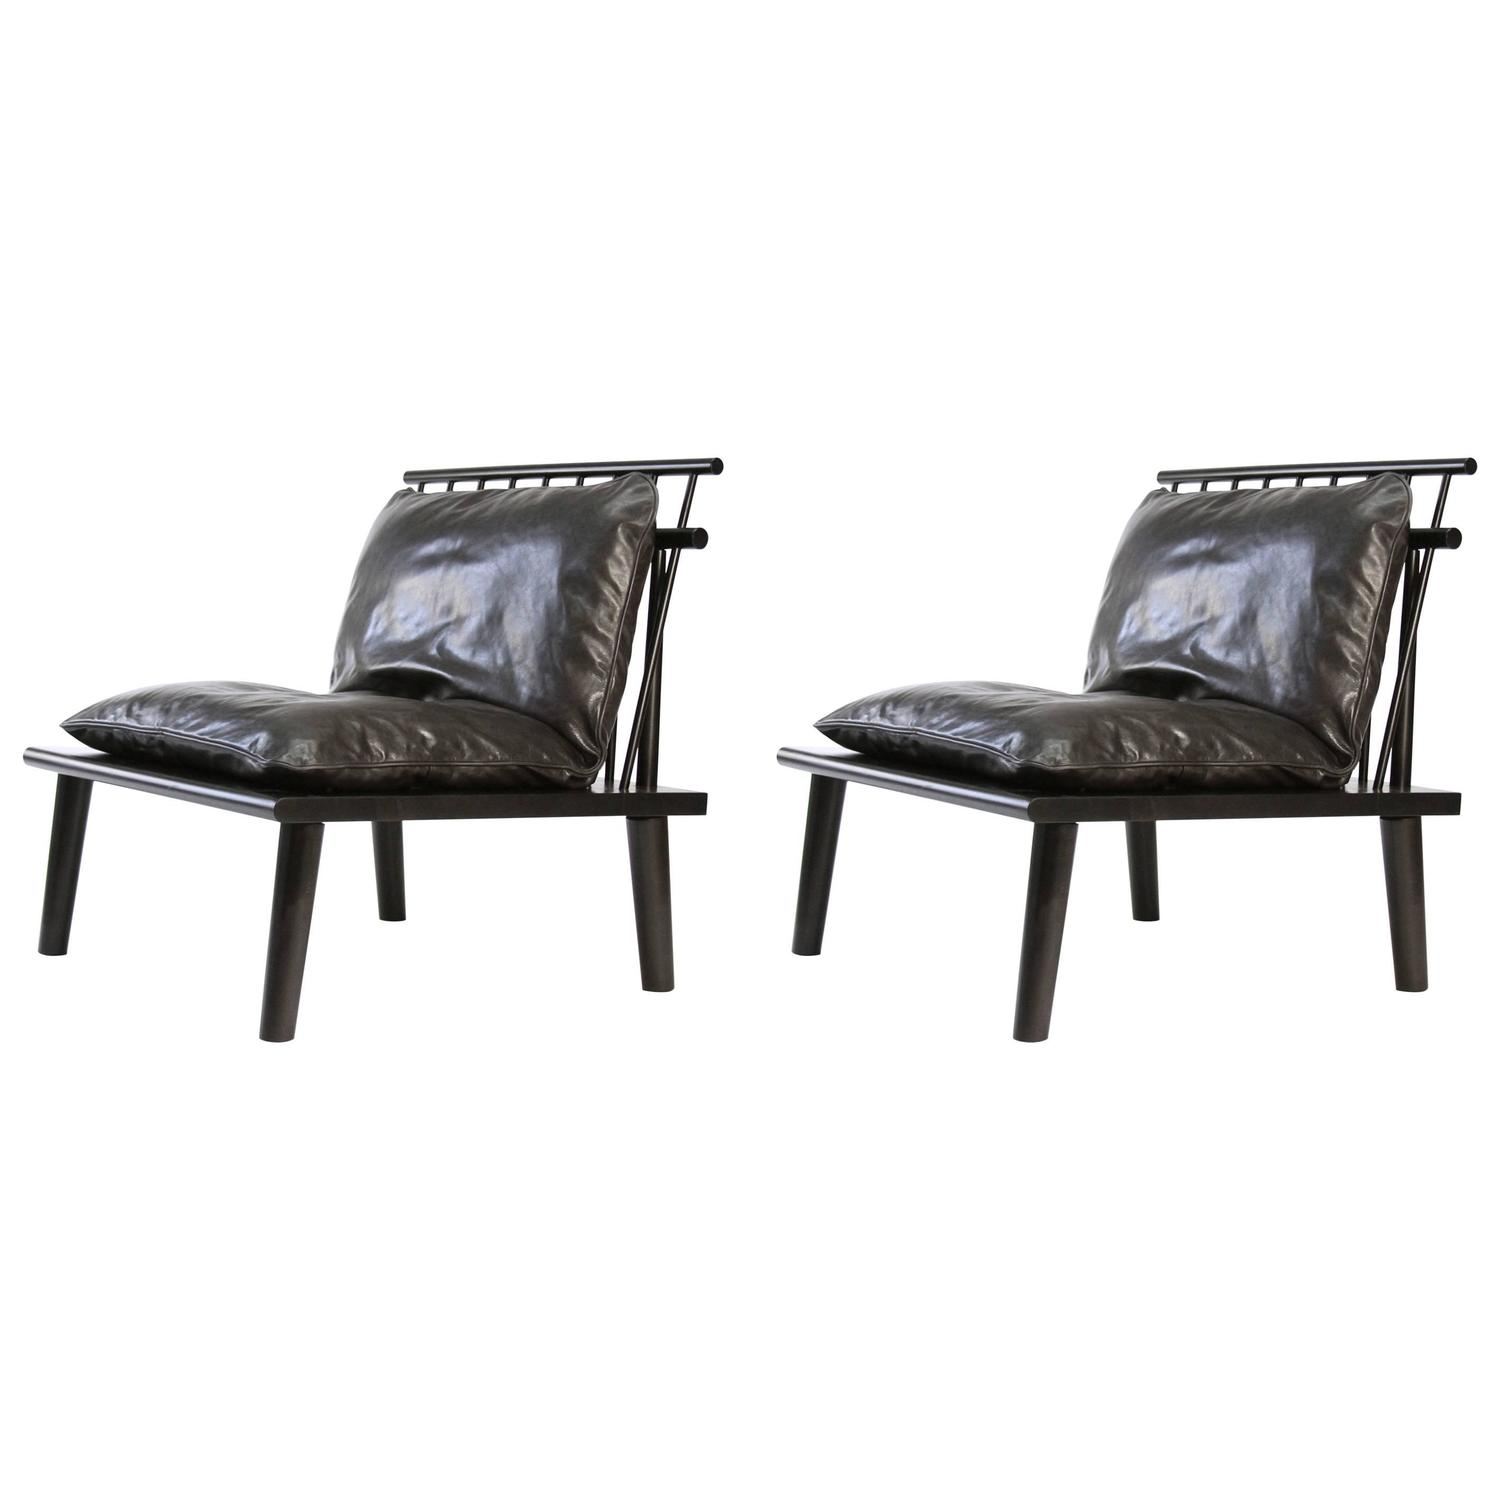 Pair of Matunuck Lounge Chairs Charcoal Leather Down Feather 20